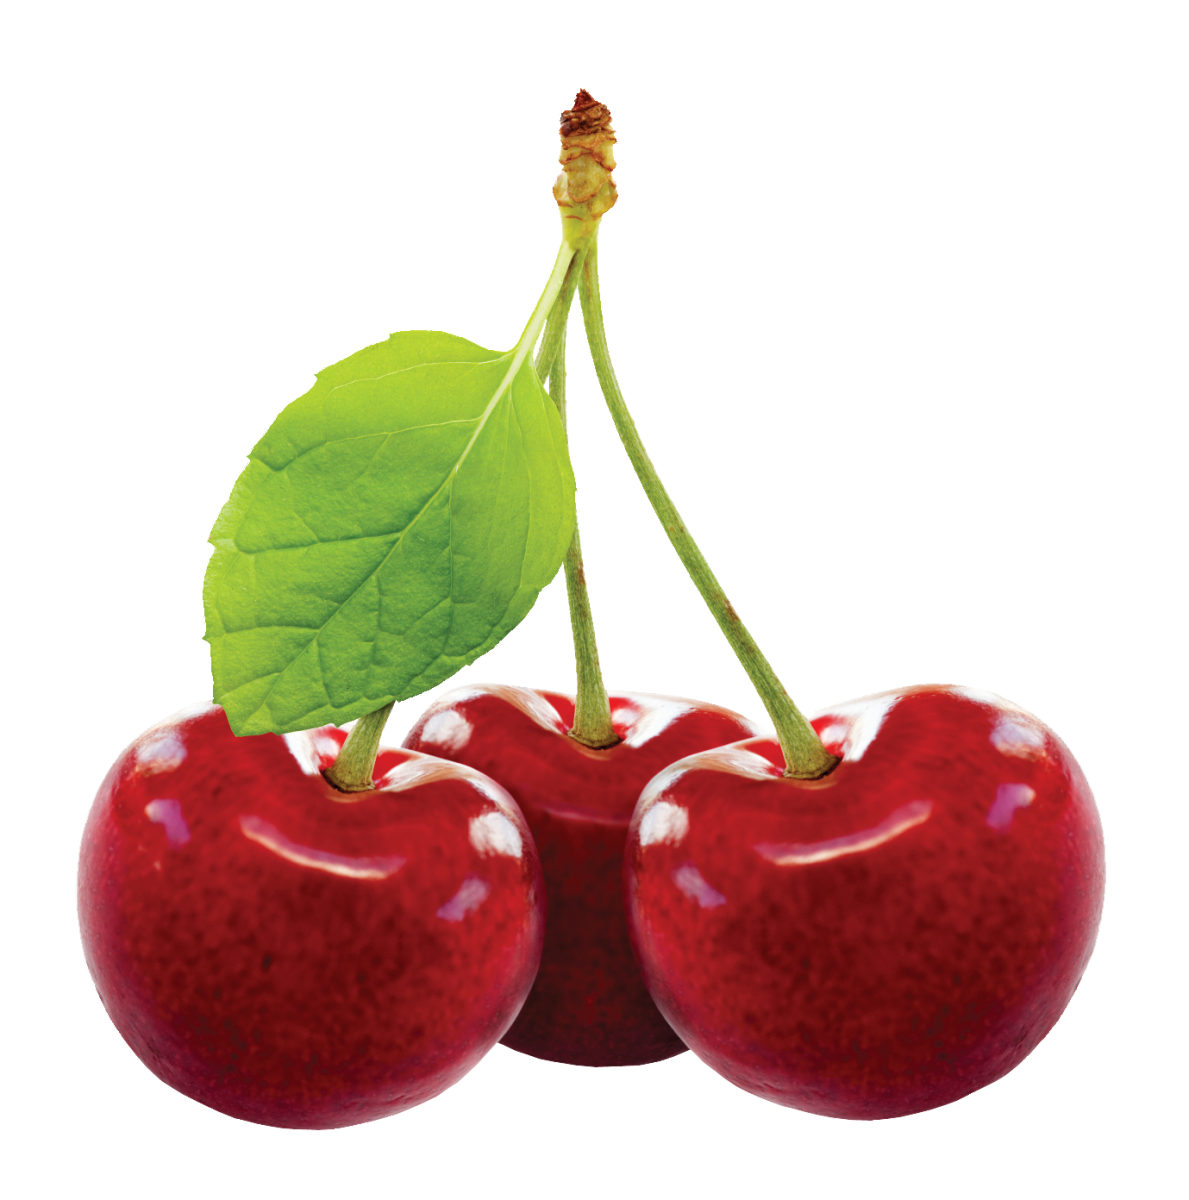 Cherry Fruit Image PNG Image